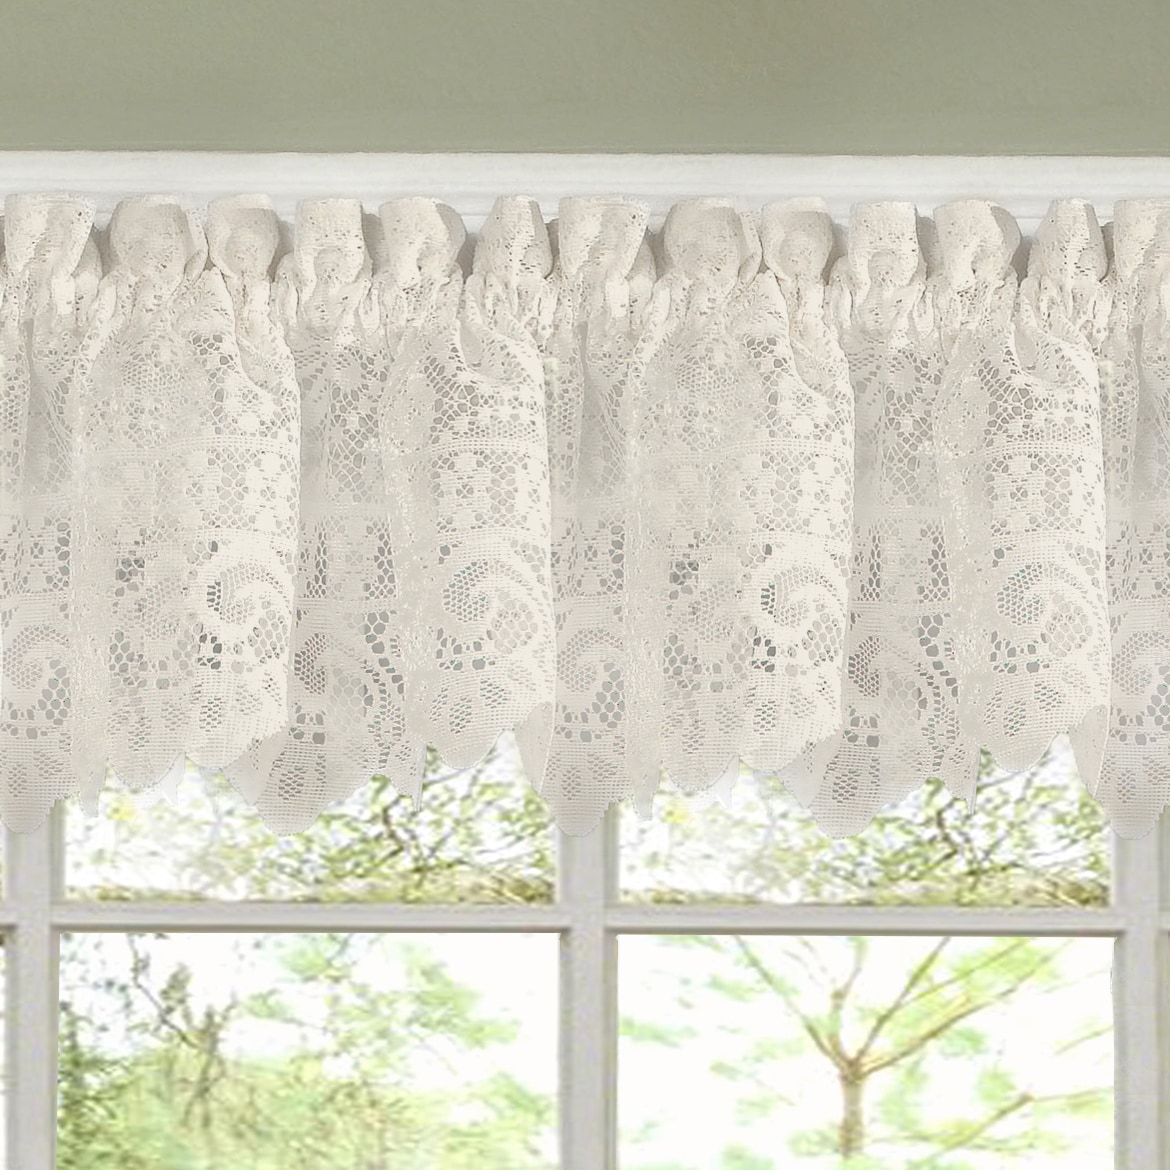 shop luxurious old world style lace kitchen curtains tiers and valances in cream on sale free shipping on orders over 45 overstockcom 10050988 - Kitchen Curtain